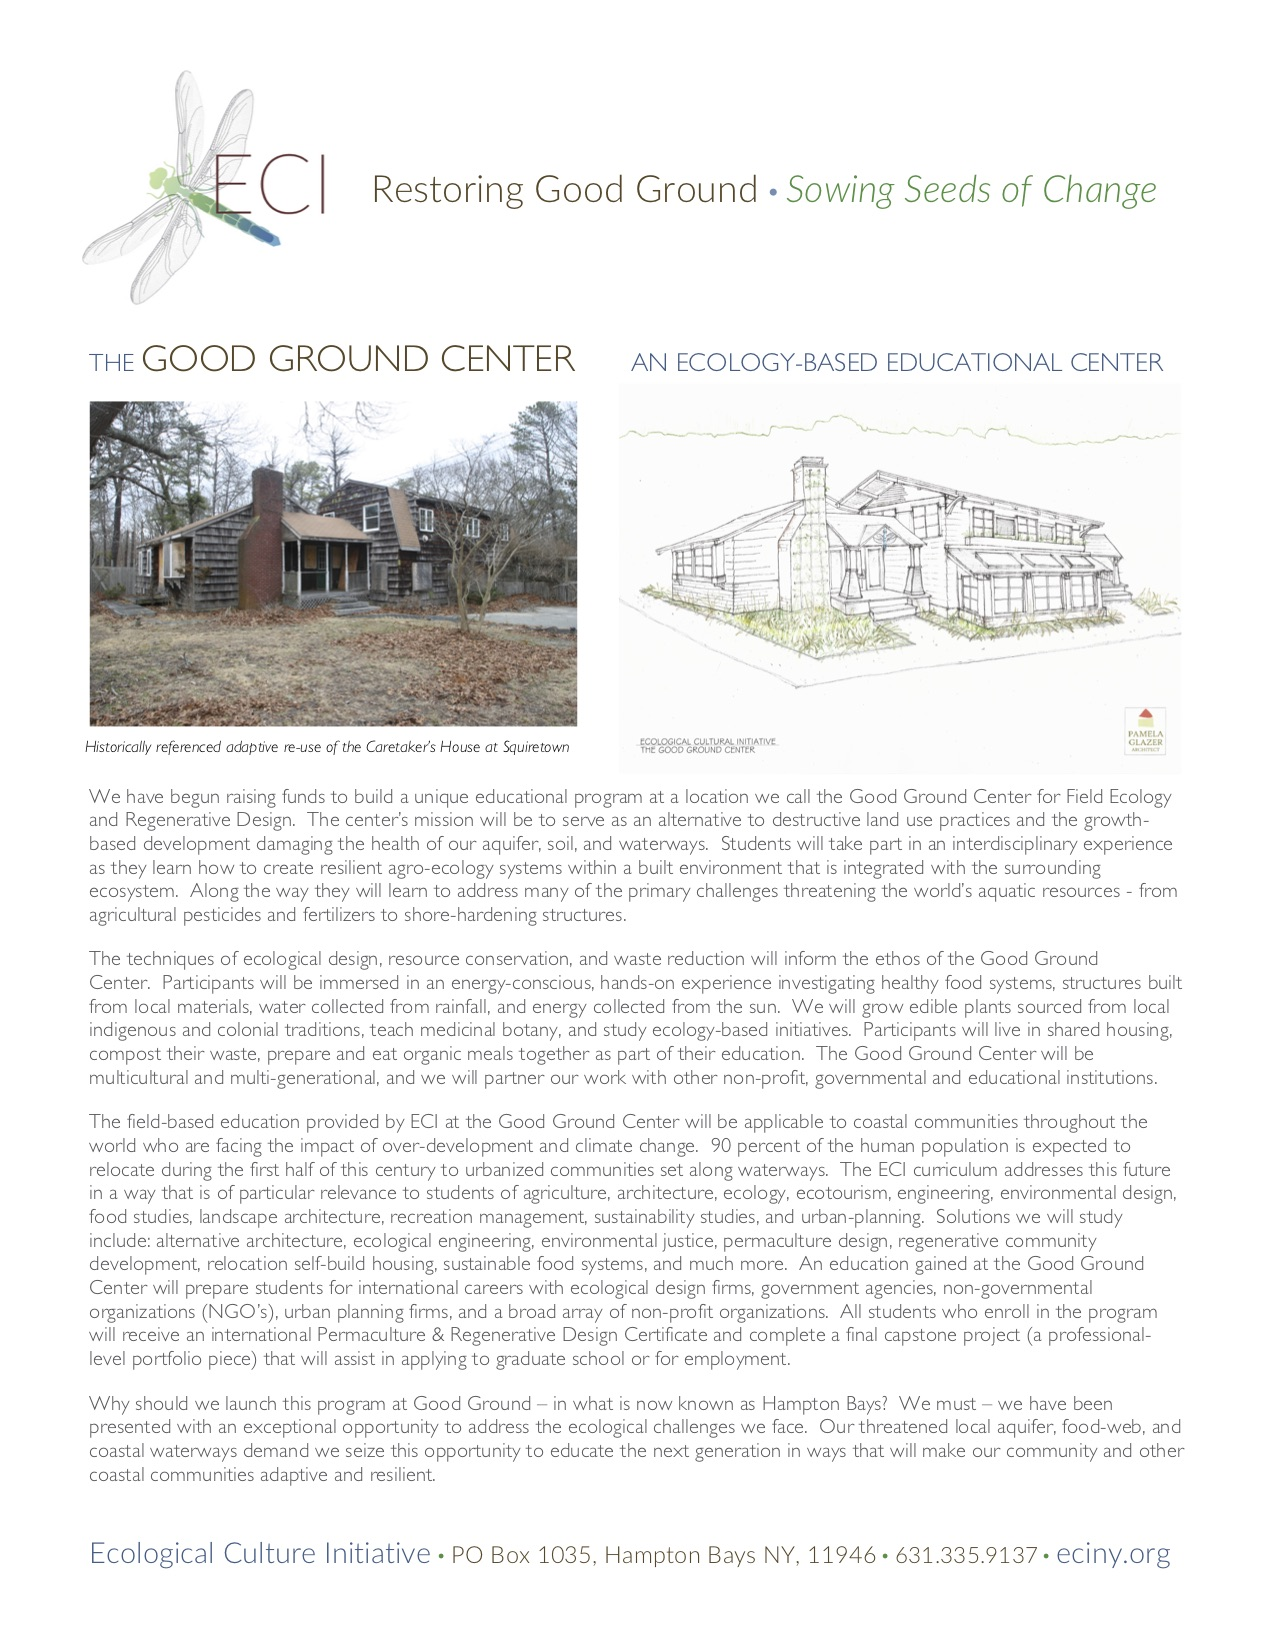 The  Good Ground Center  project is no longer being pursued in Southampton